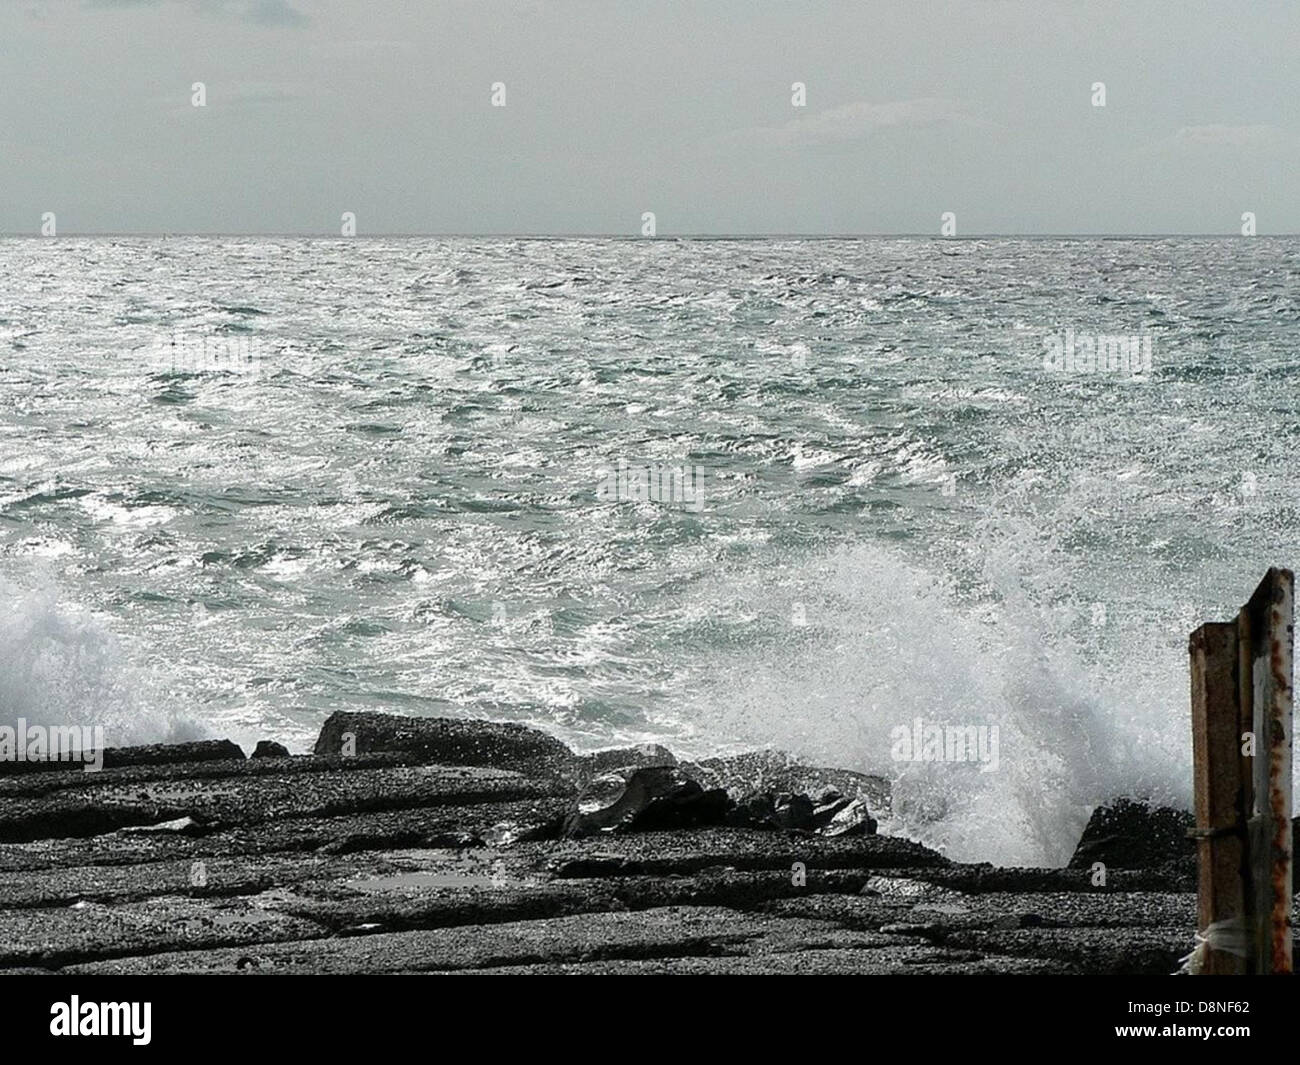 Wave breaking on oceans beach. - Stock Image